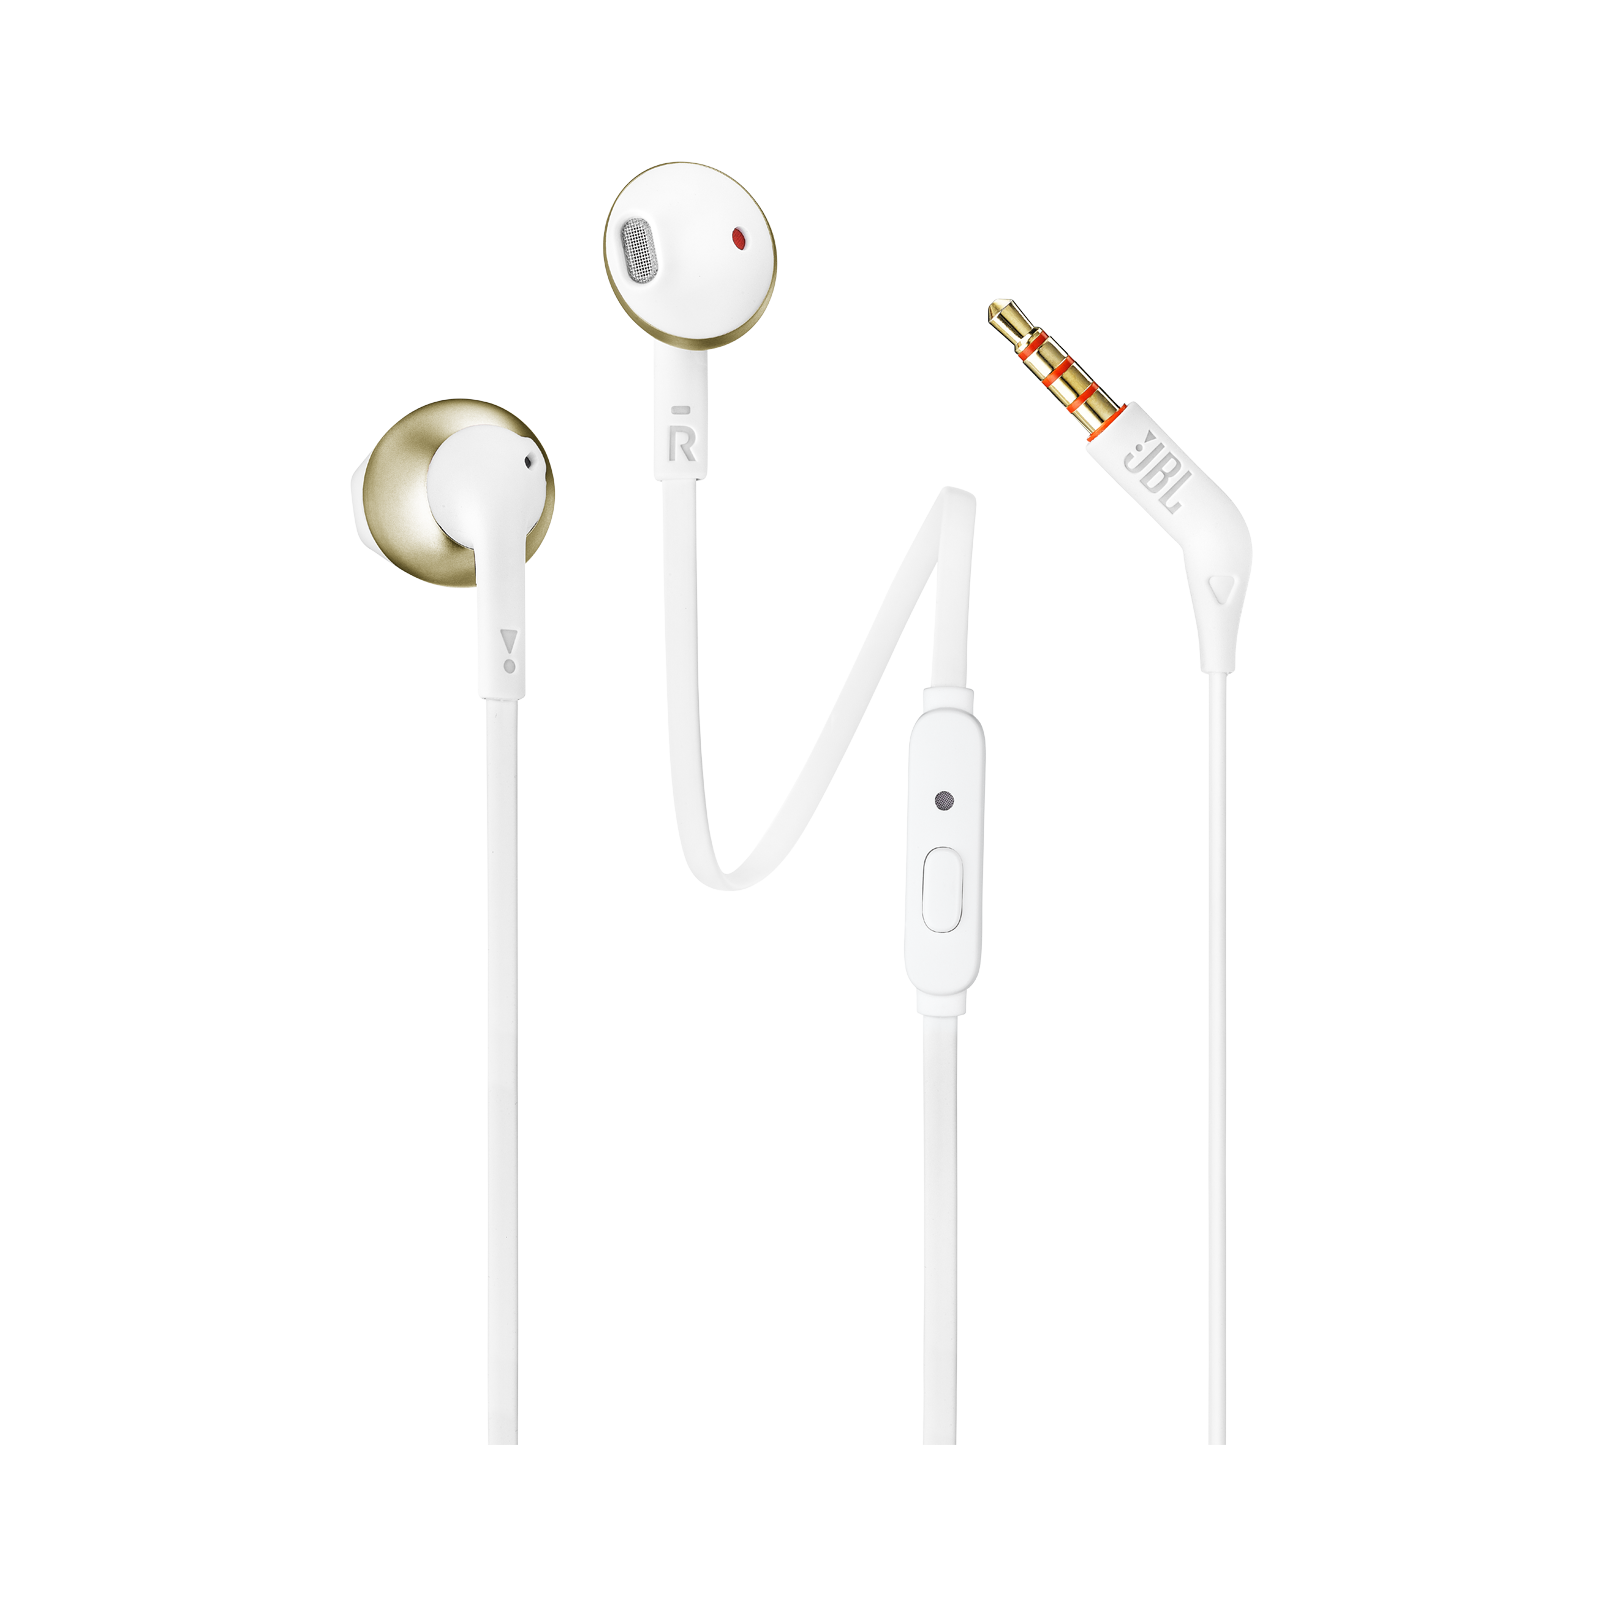 JBL TUNE 205 - Champagne Gold - Earbud headphones - Hero